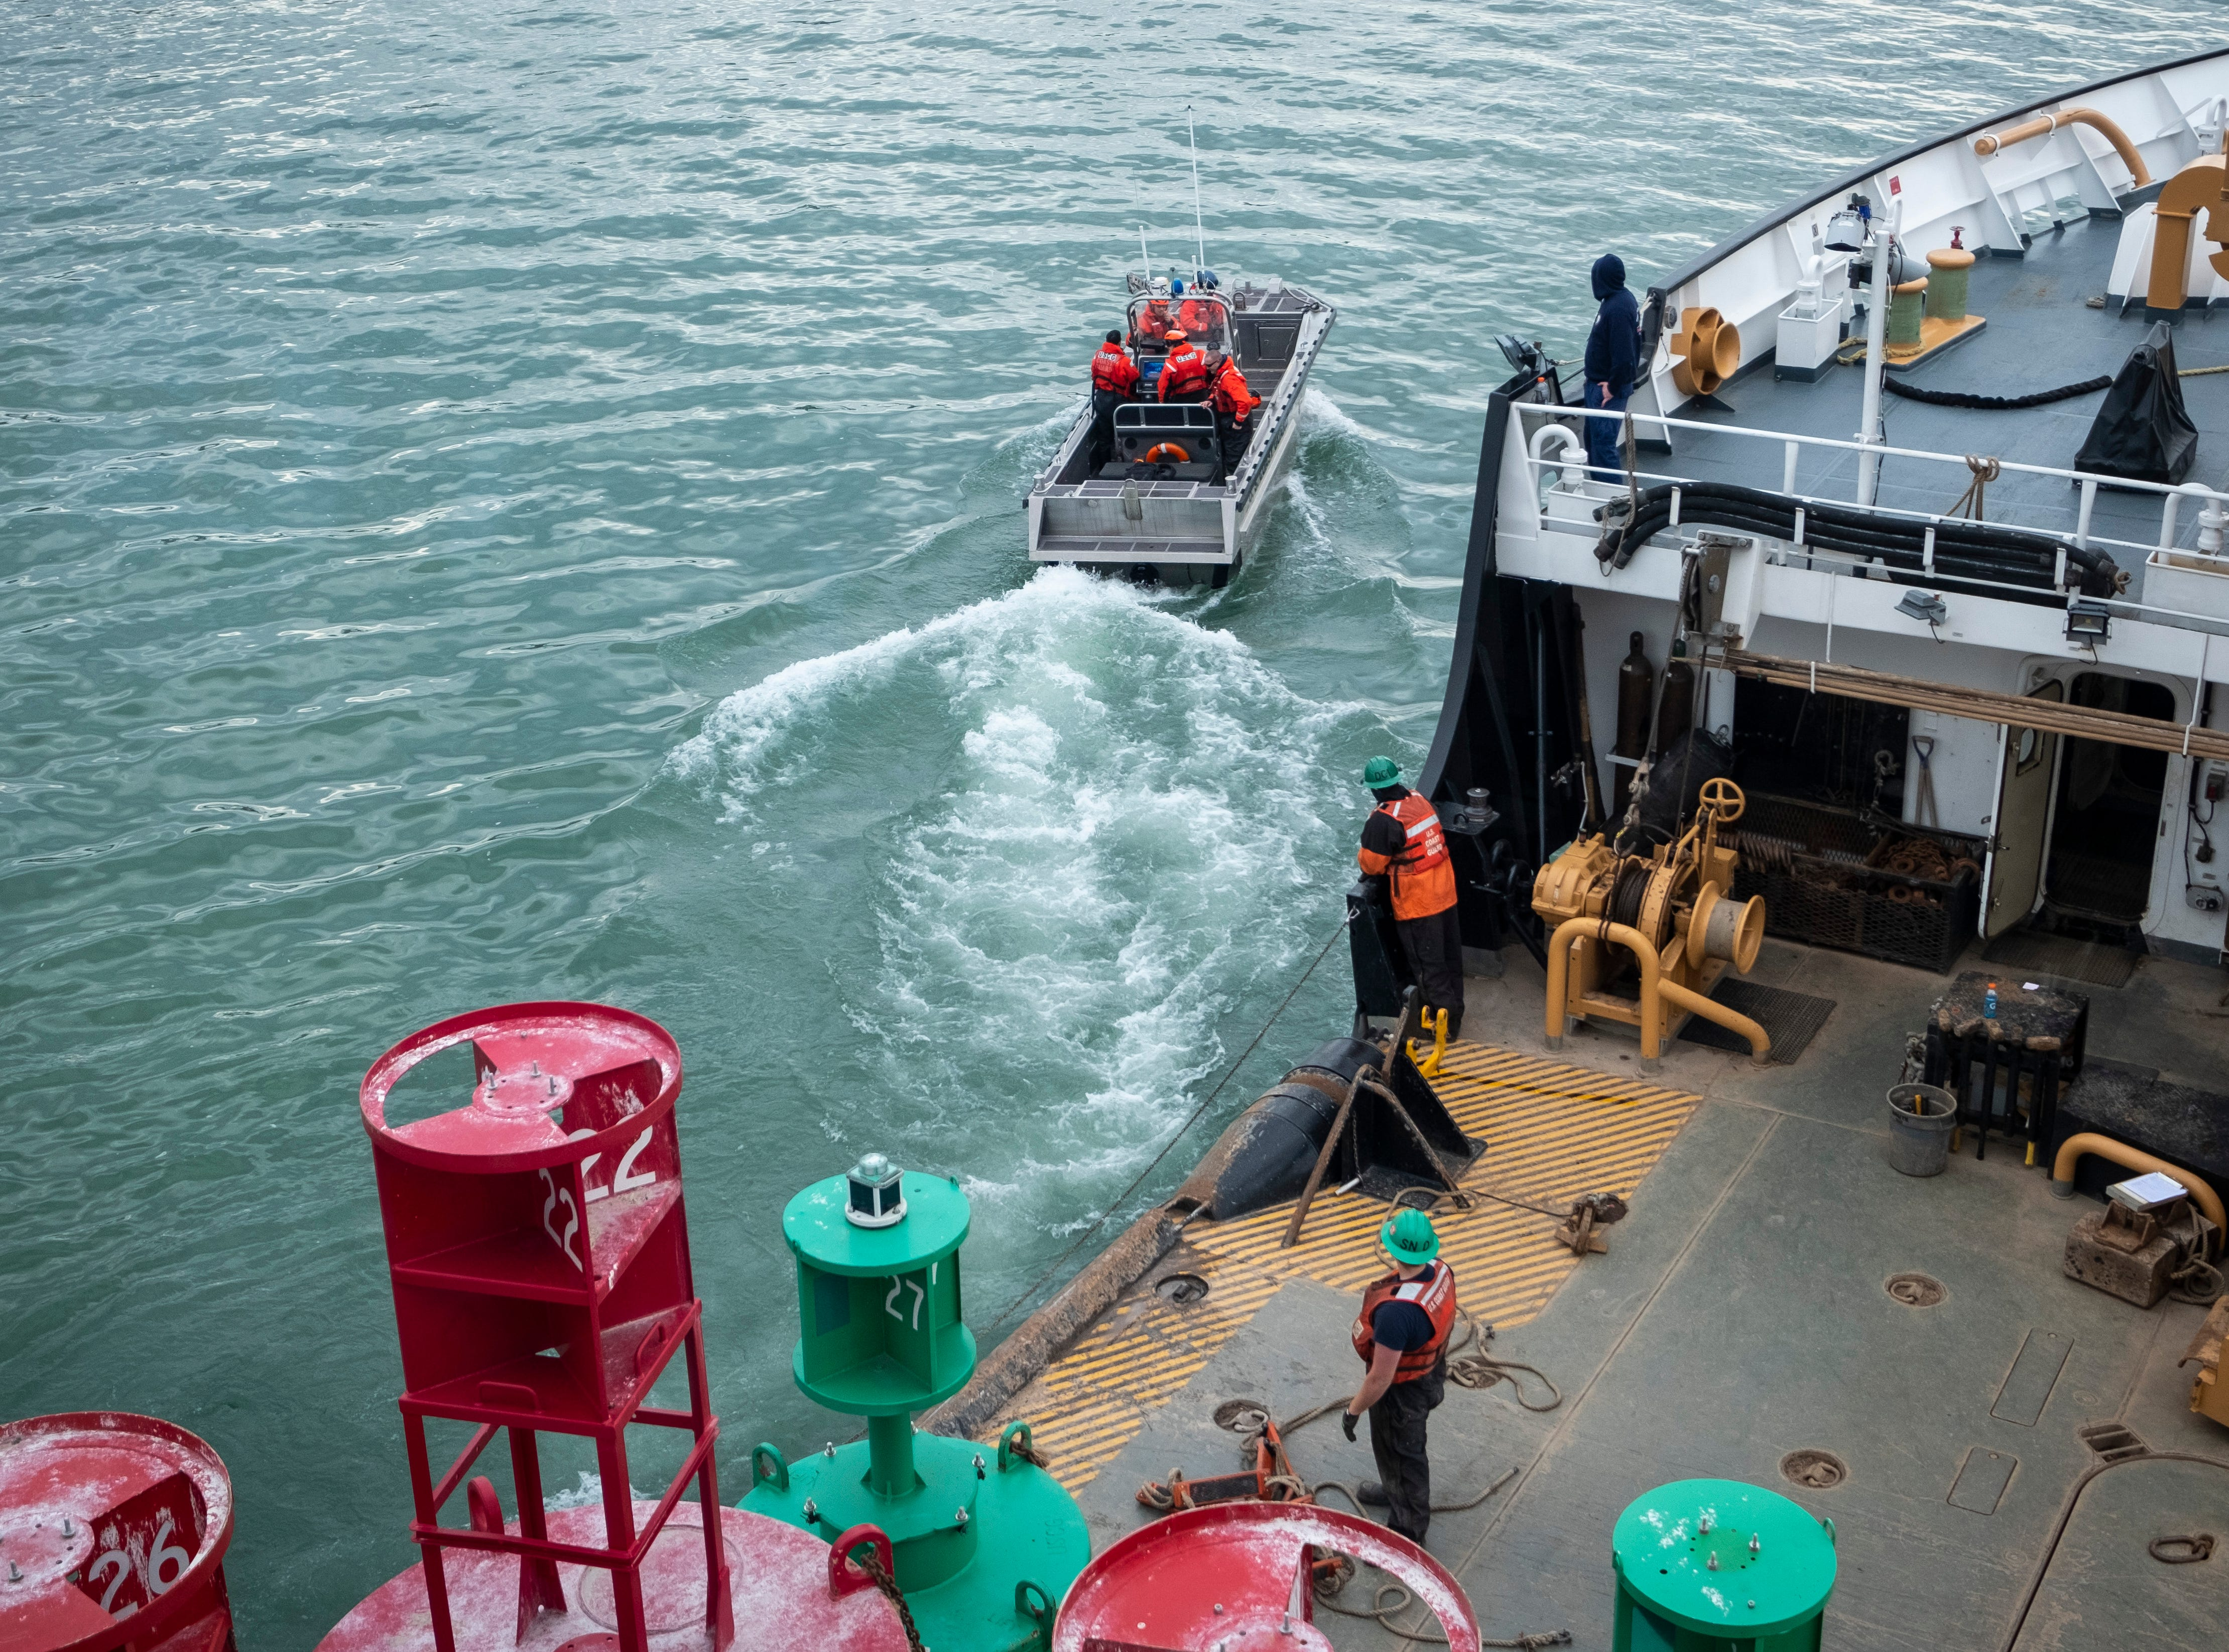 The Hollyhock's ATON boat pulls away from the ship's buoy deck after all crewmembers have boarded Thursday morning, April 25, 2019.